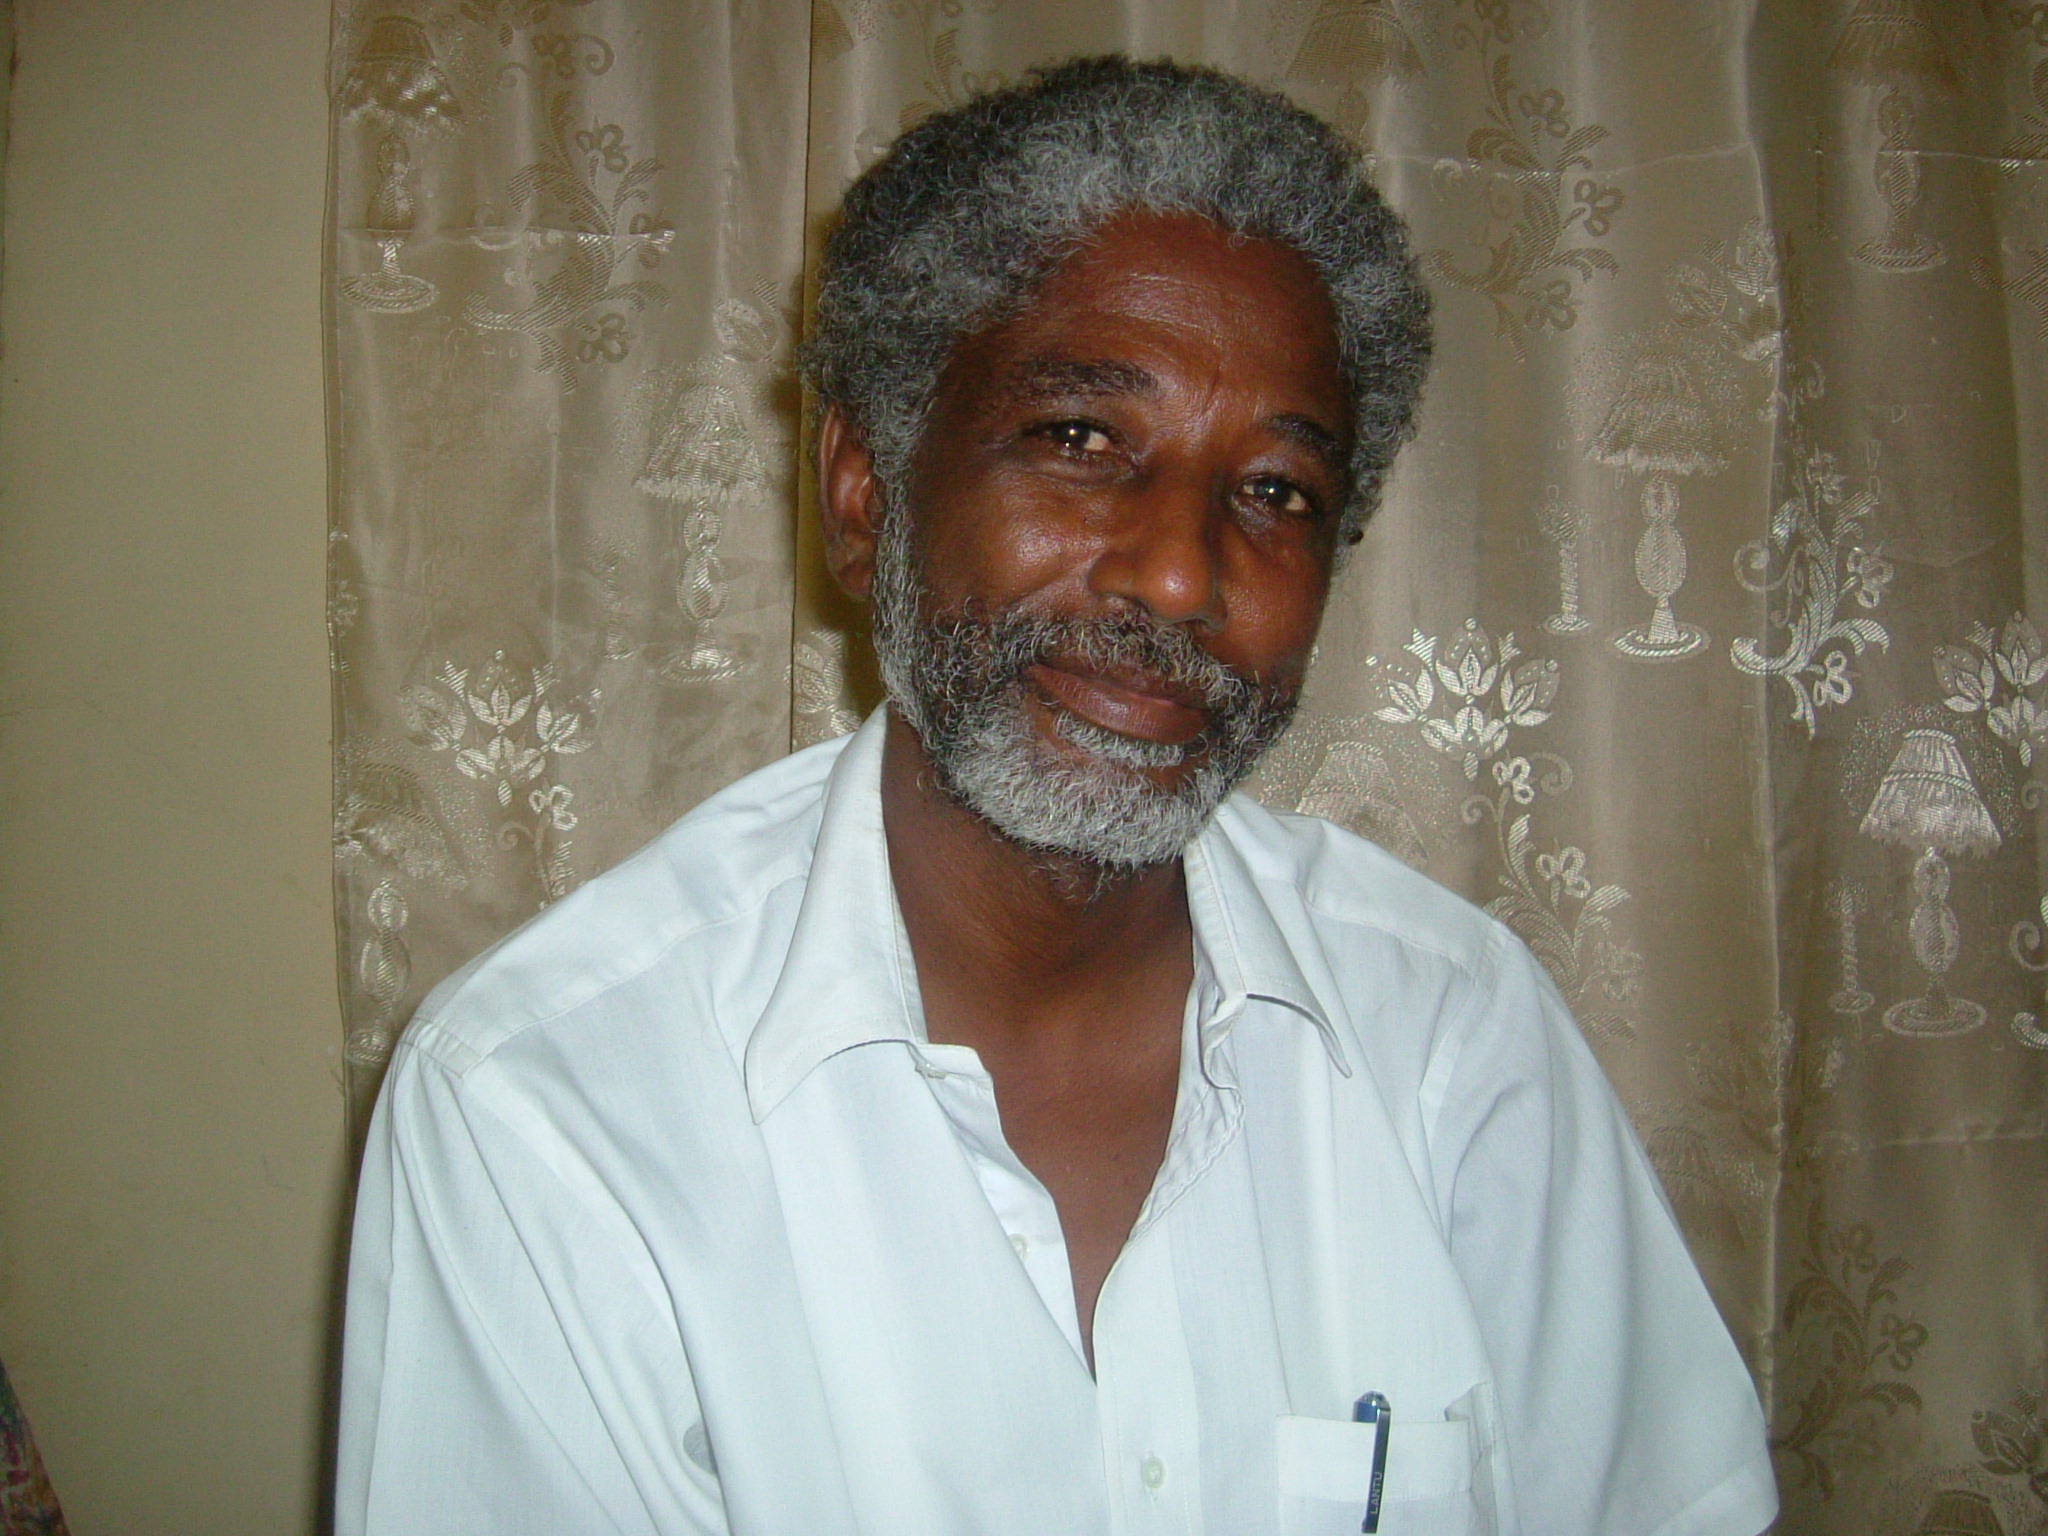 Sudan: Dr Mudawi released after eight months of wrongful imprisonment